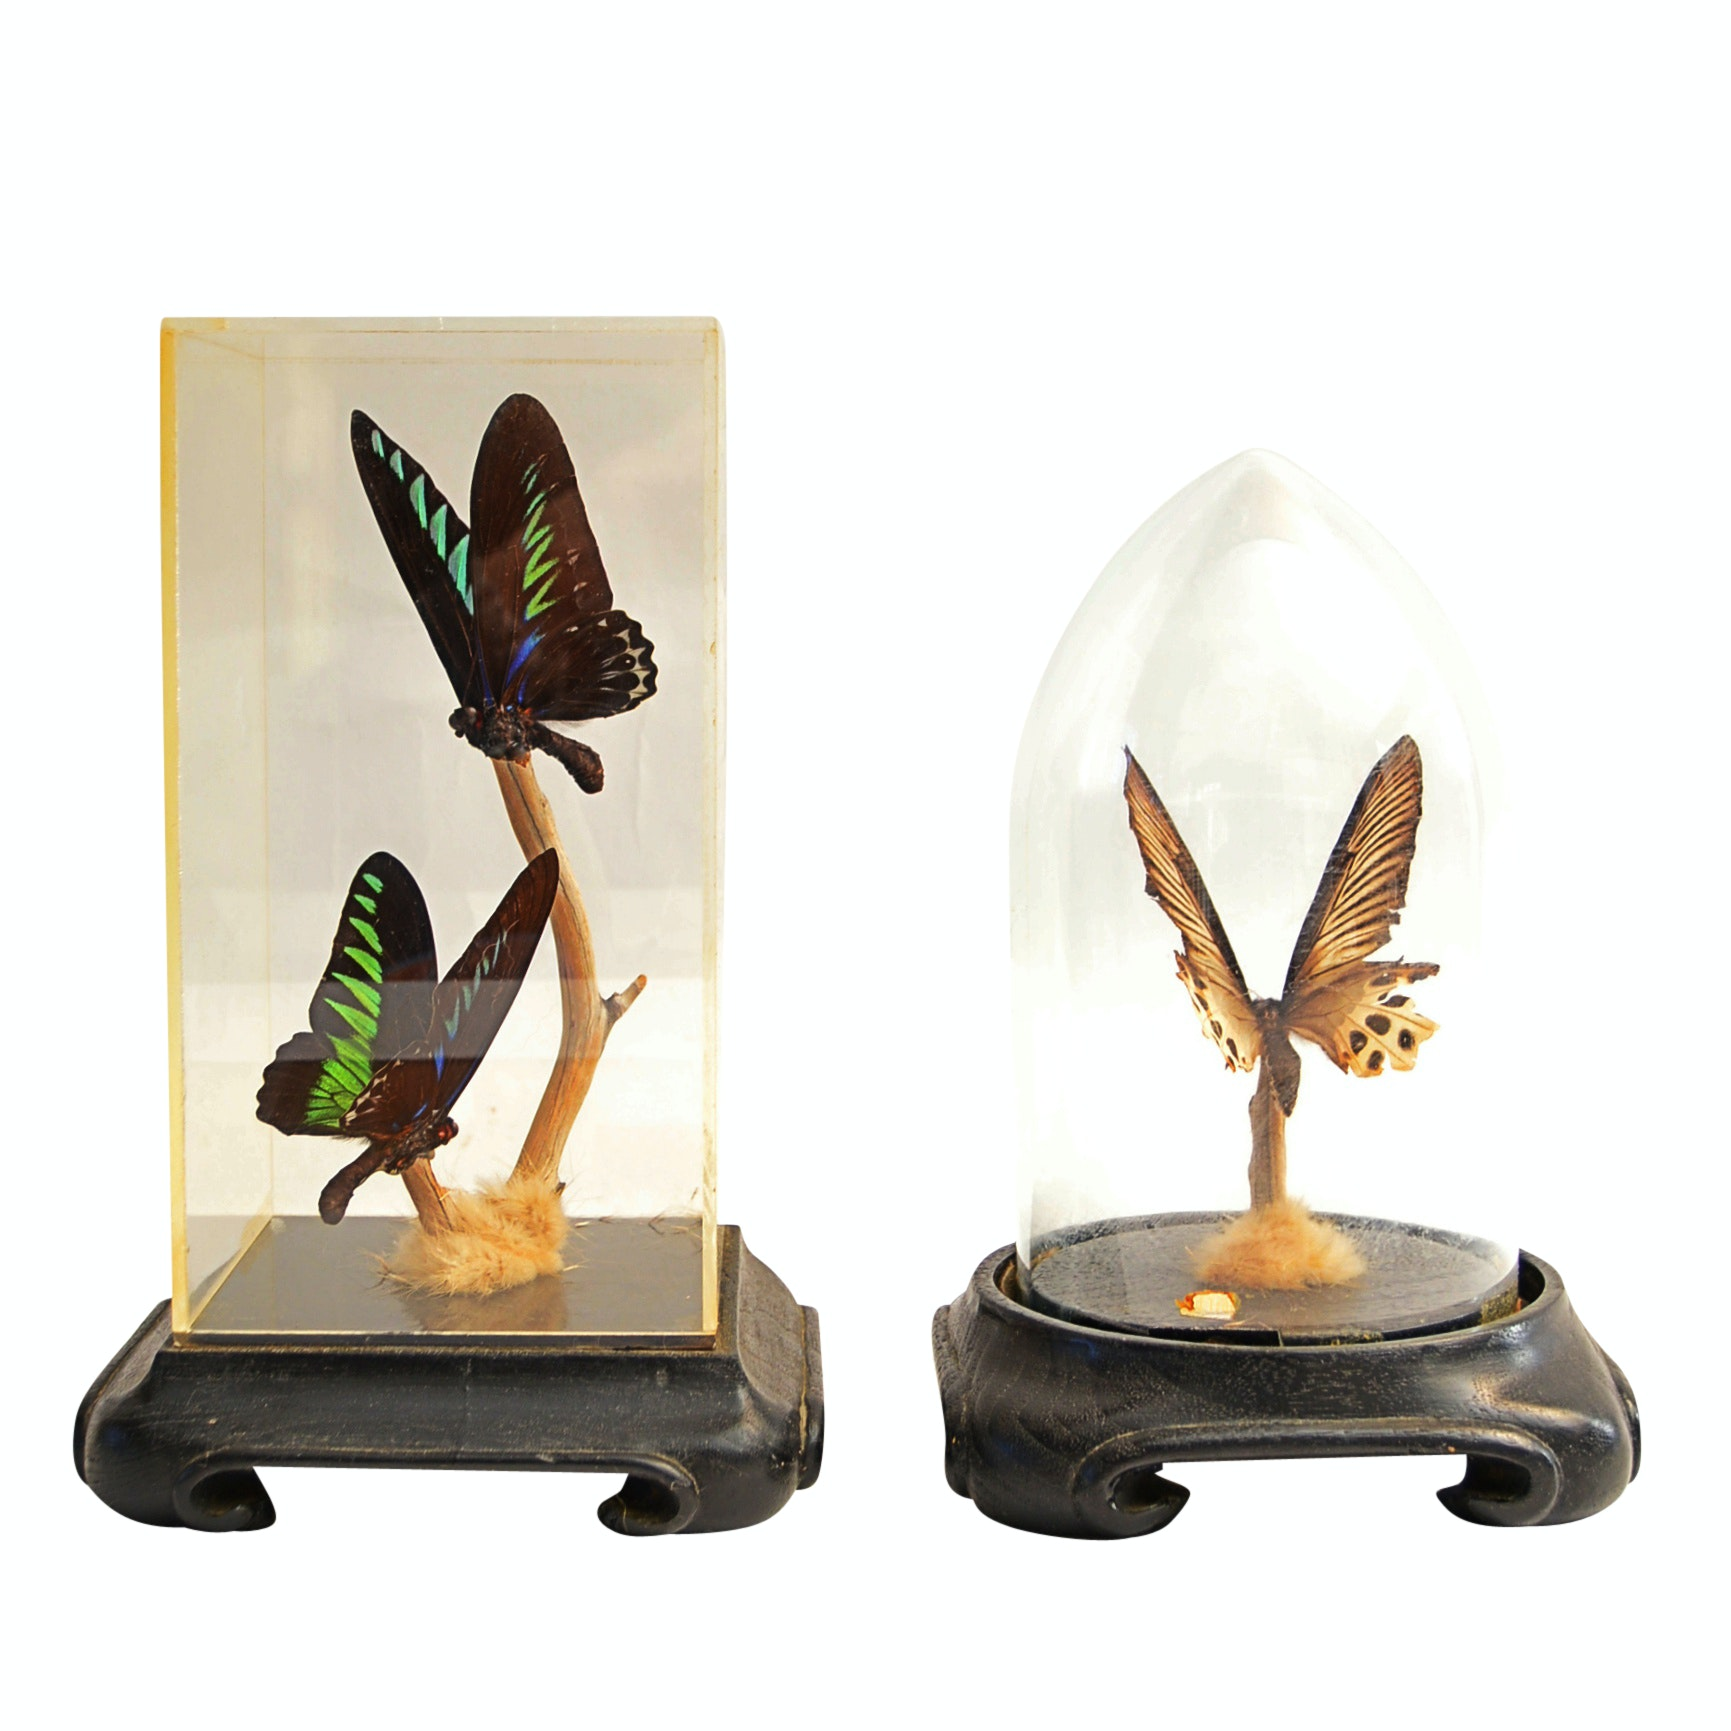 Preserved Butterflies in Vintage Display Cloches